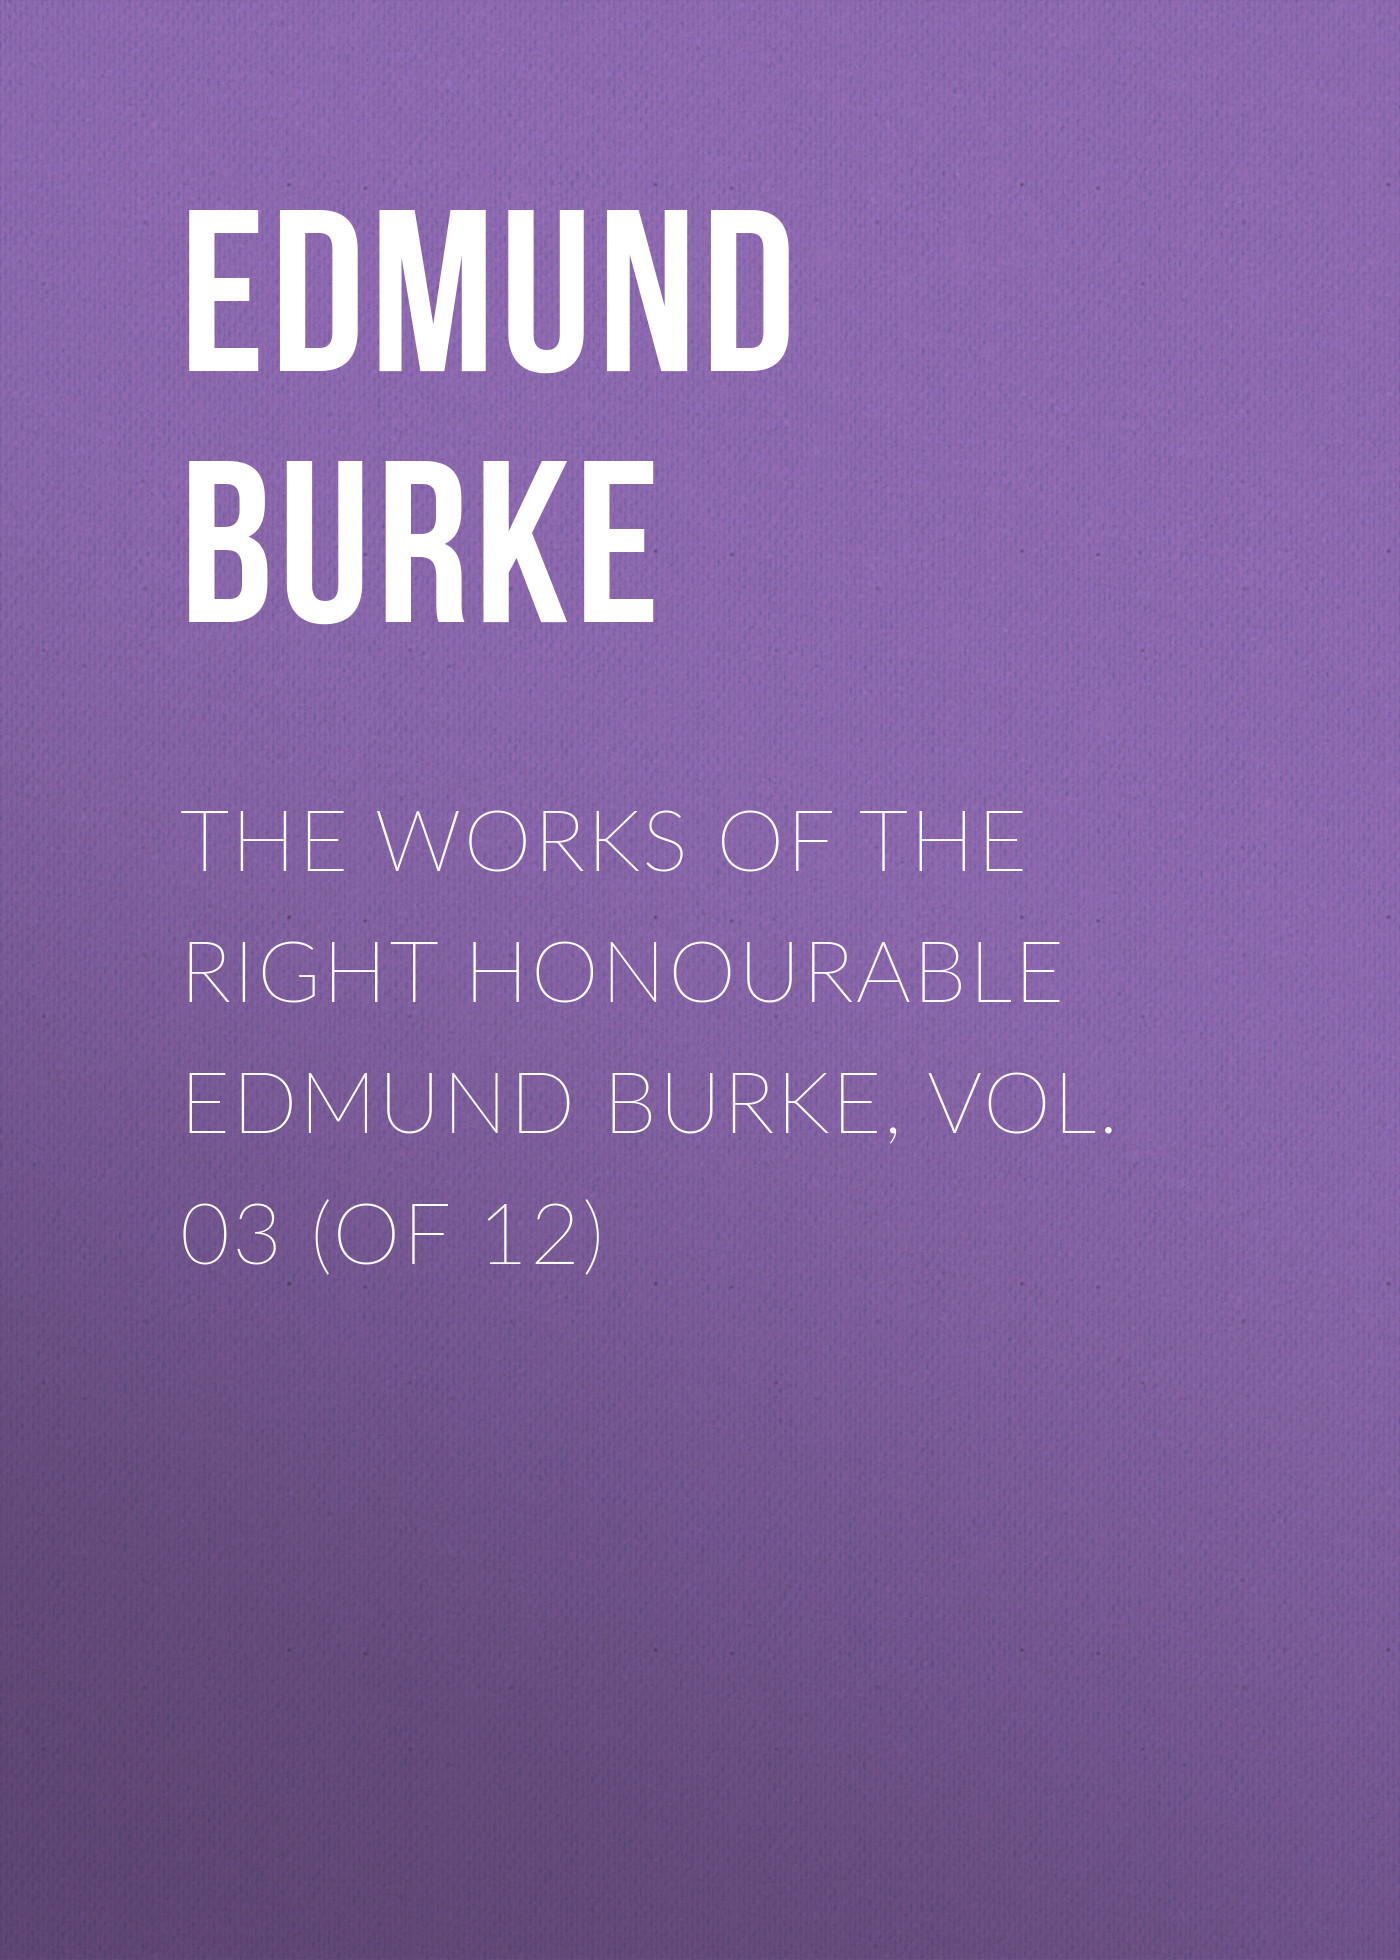 Edmund Burke The Works of the Right Honourable Edmund Burke, Vol. 03 (of 12) edmund burke the works of the right honourable edmund burke vol 02 of 12